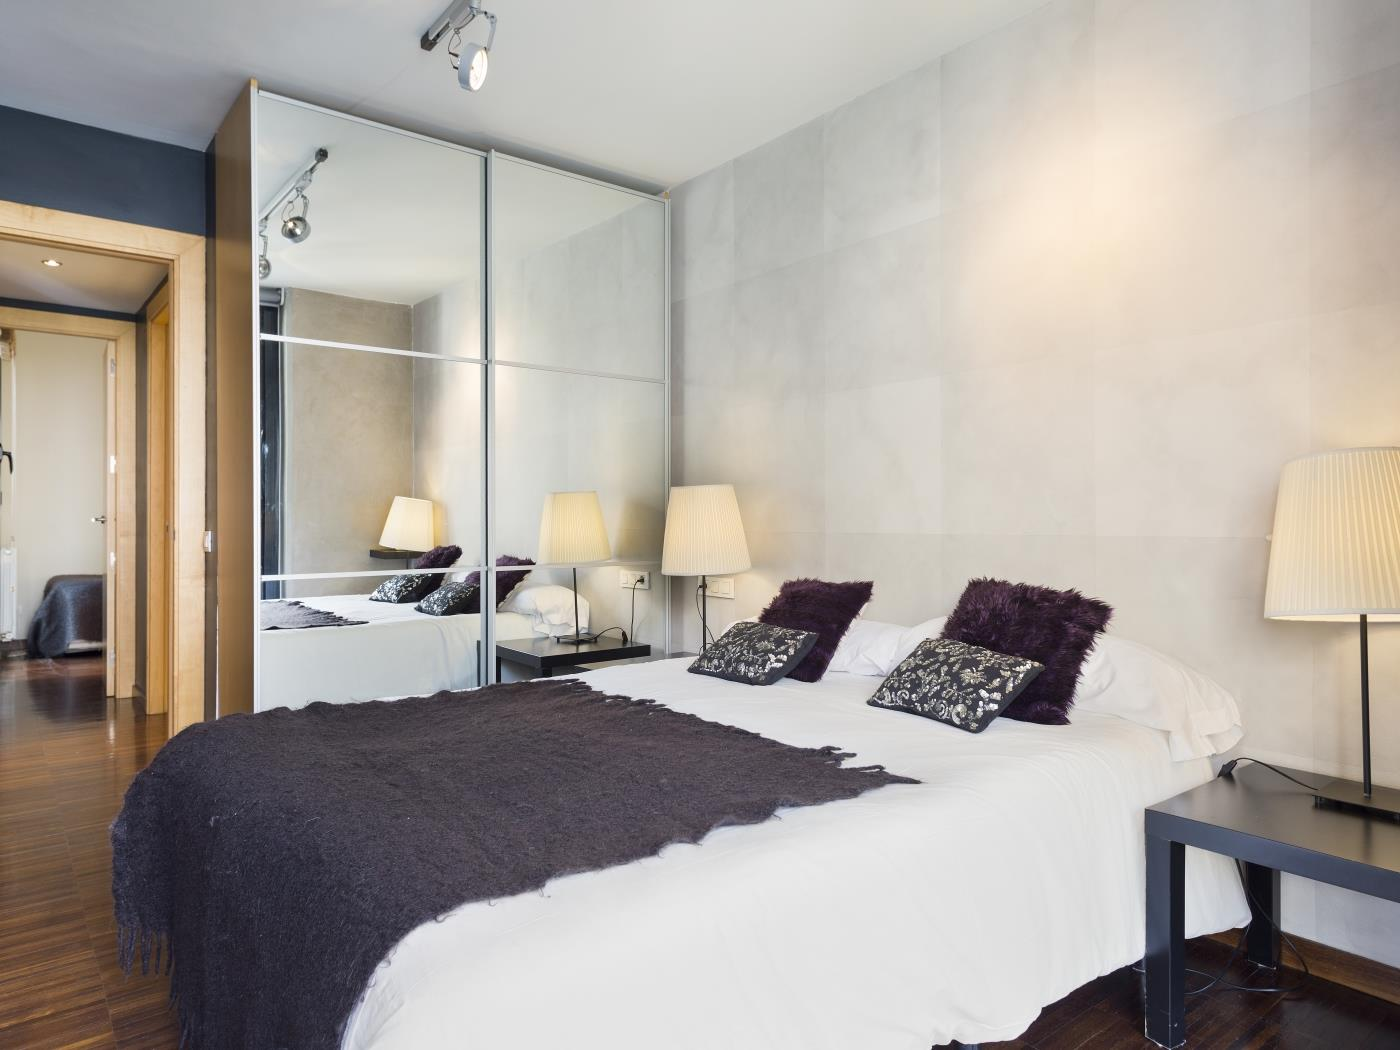 Executive Apartment in Sarrià – Pedralbes - My Space Barcelona Mieszkanie